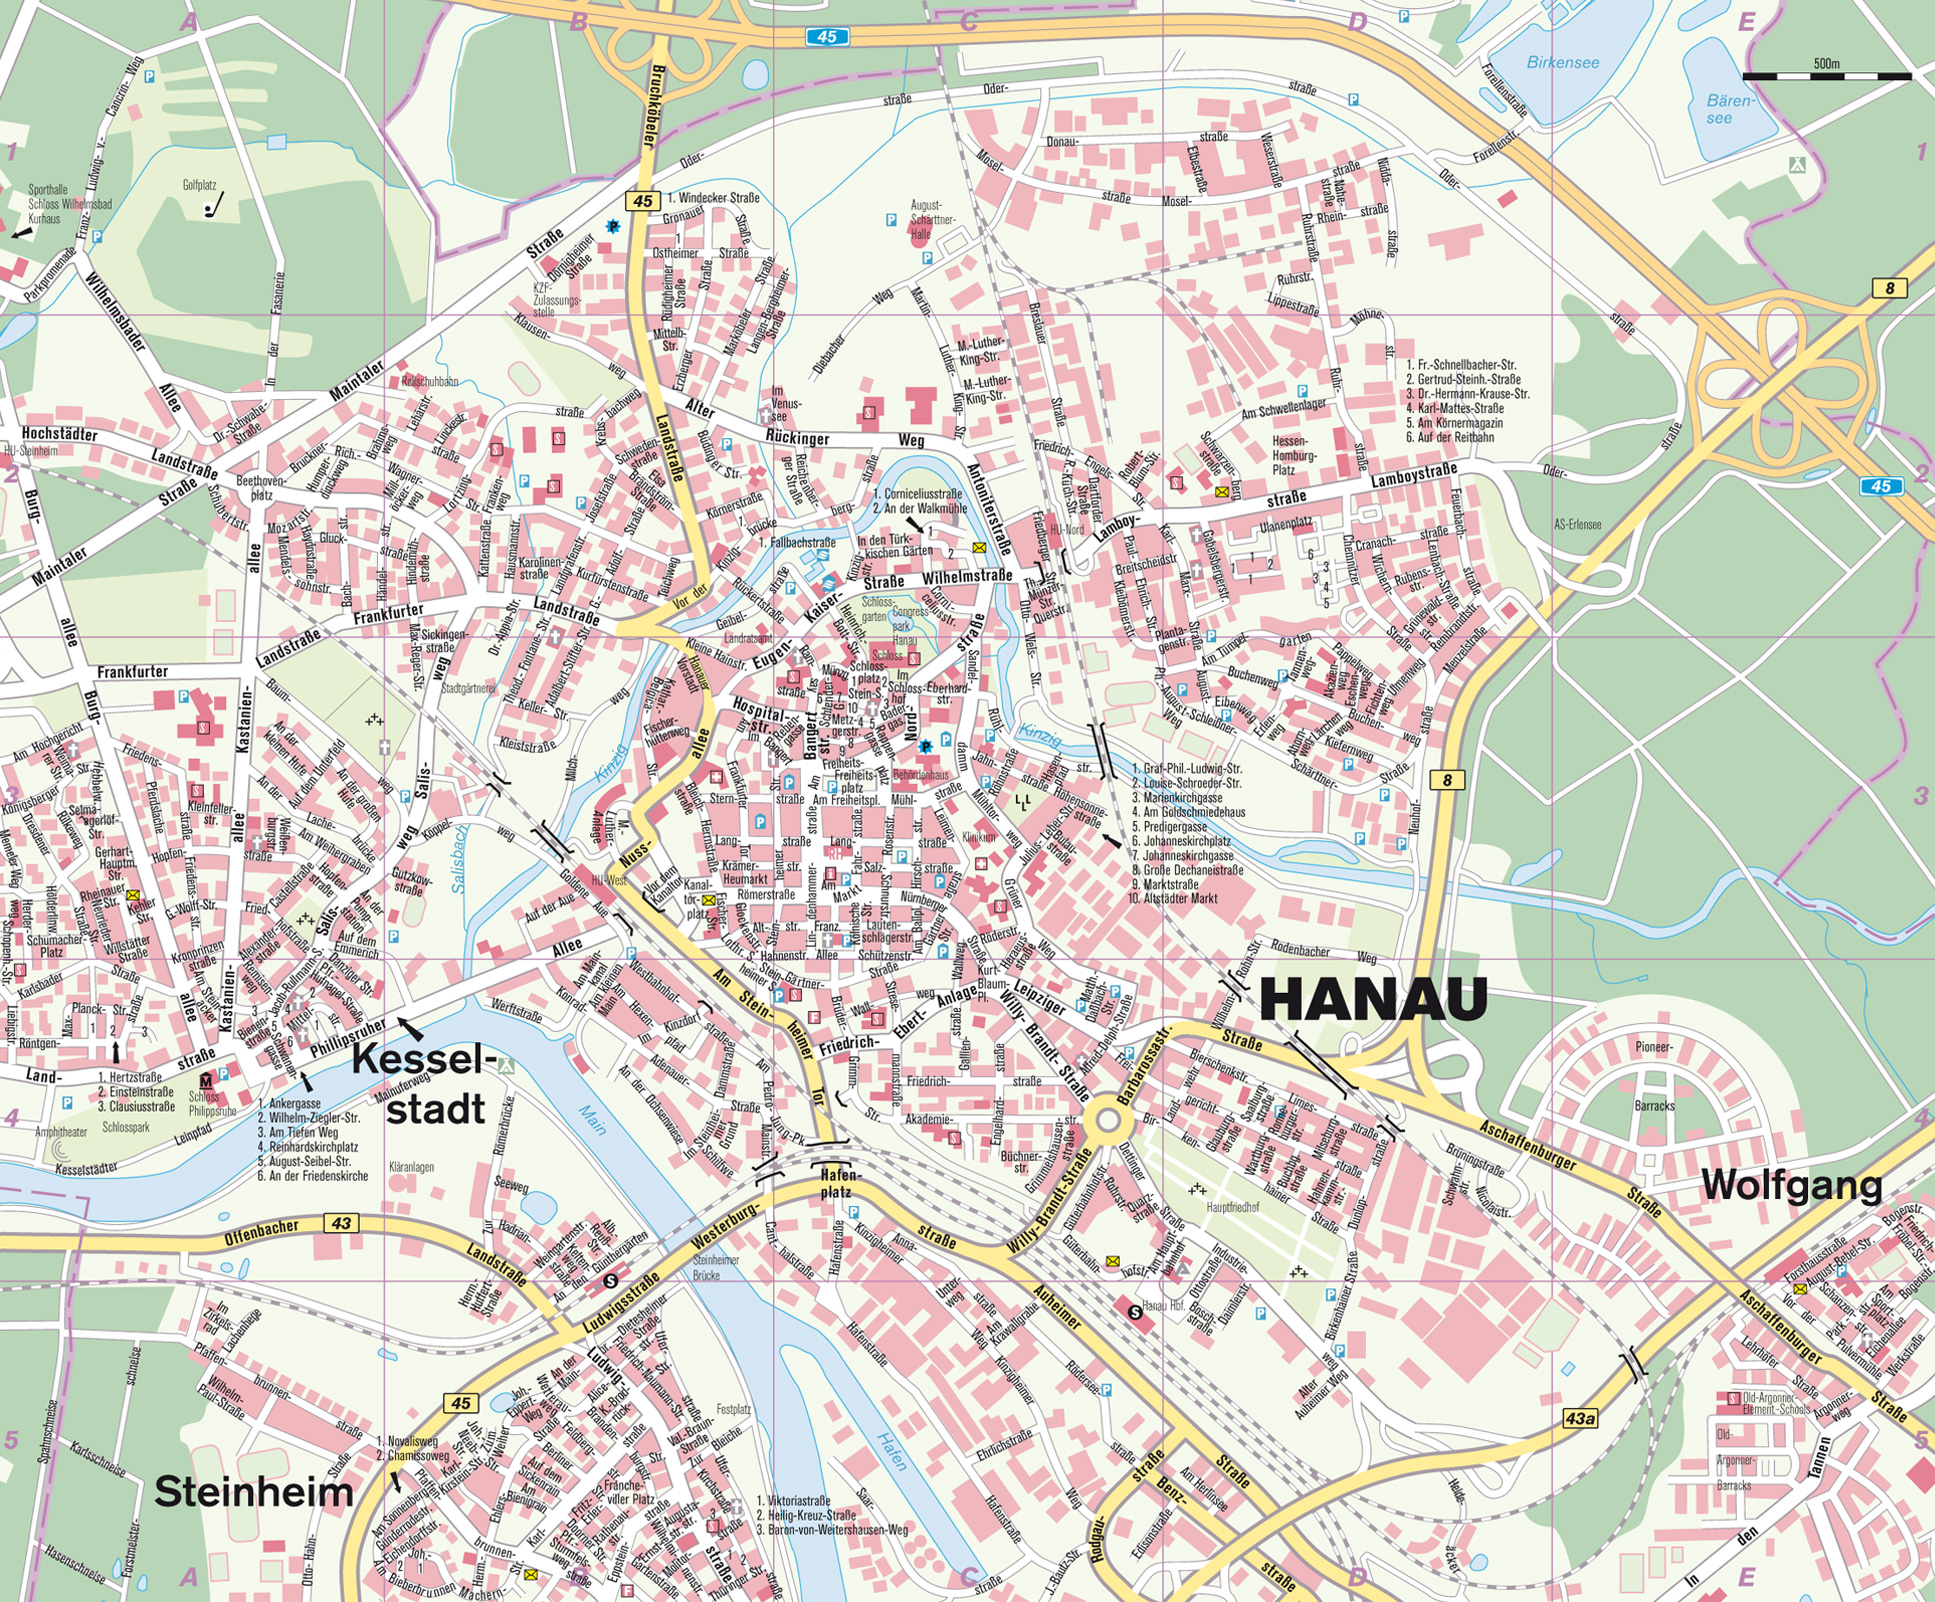 Hanau am Main Germany  city photo : Hanau Map Hanau Germany • mappery